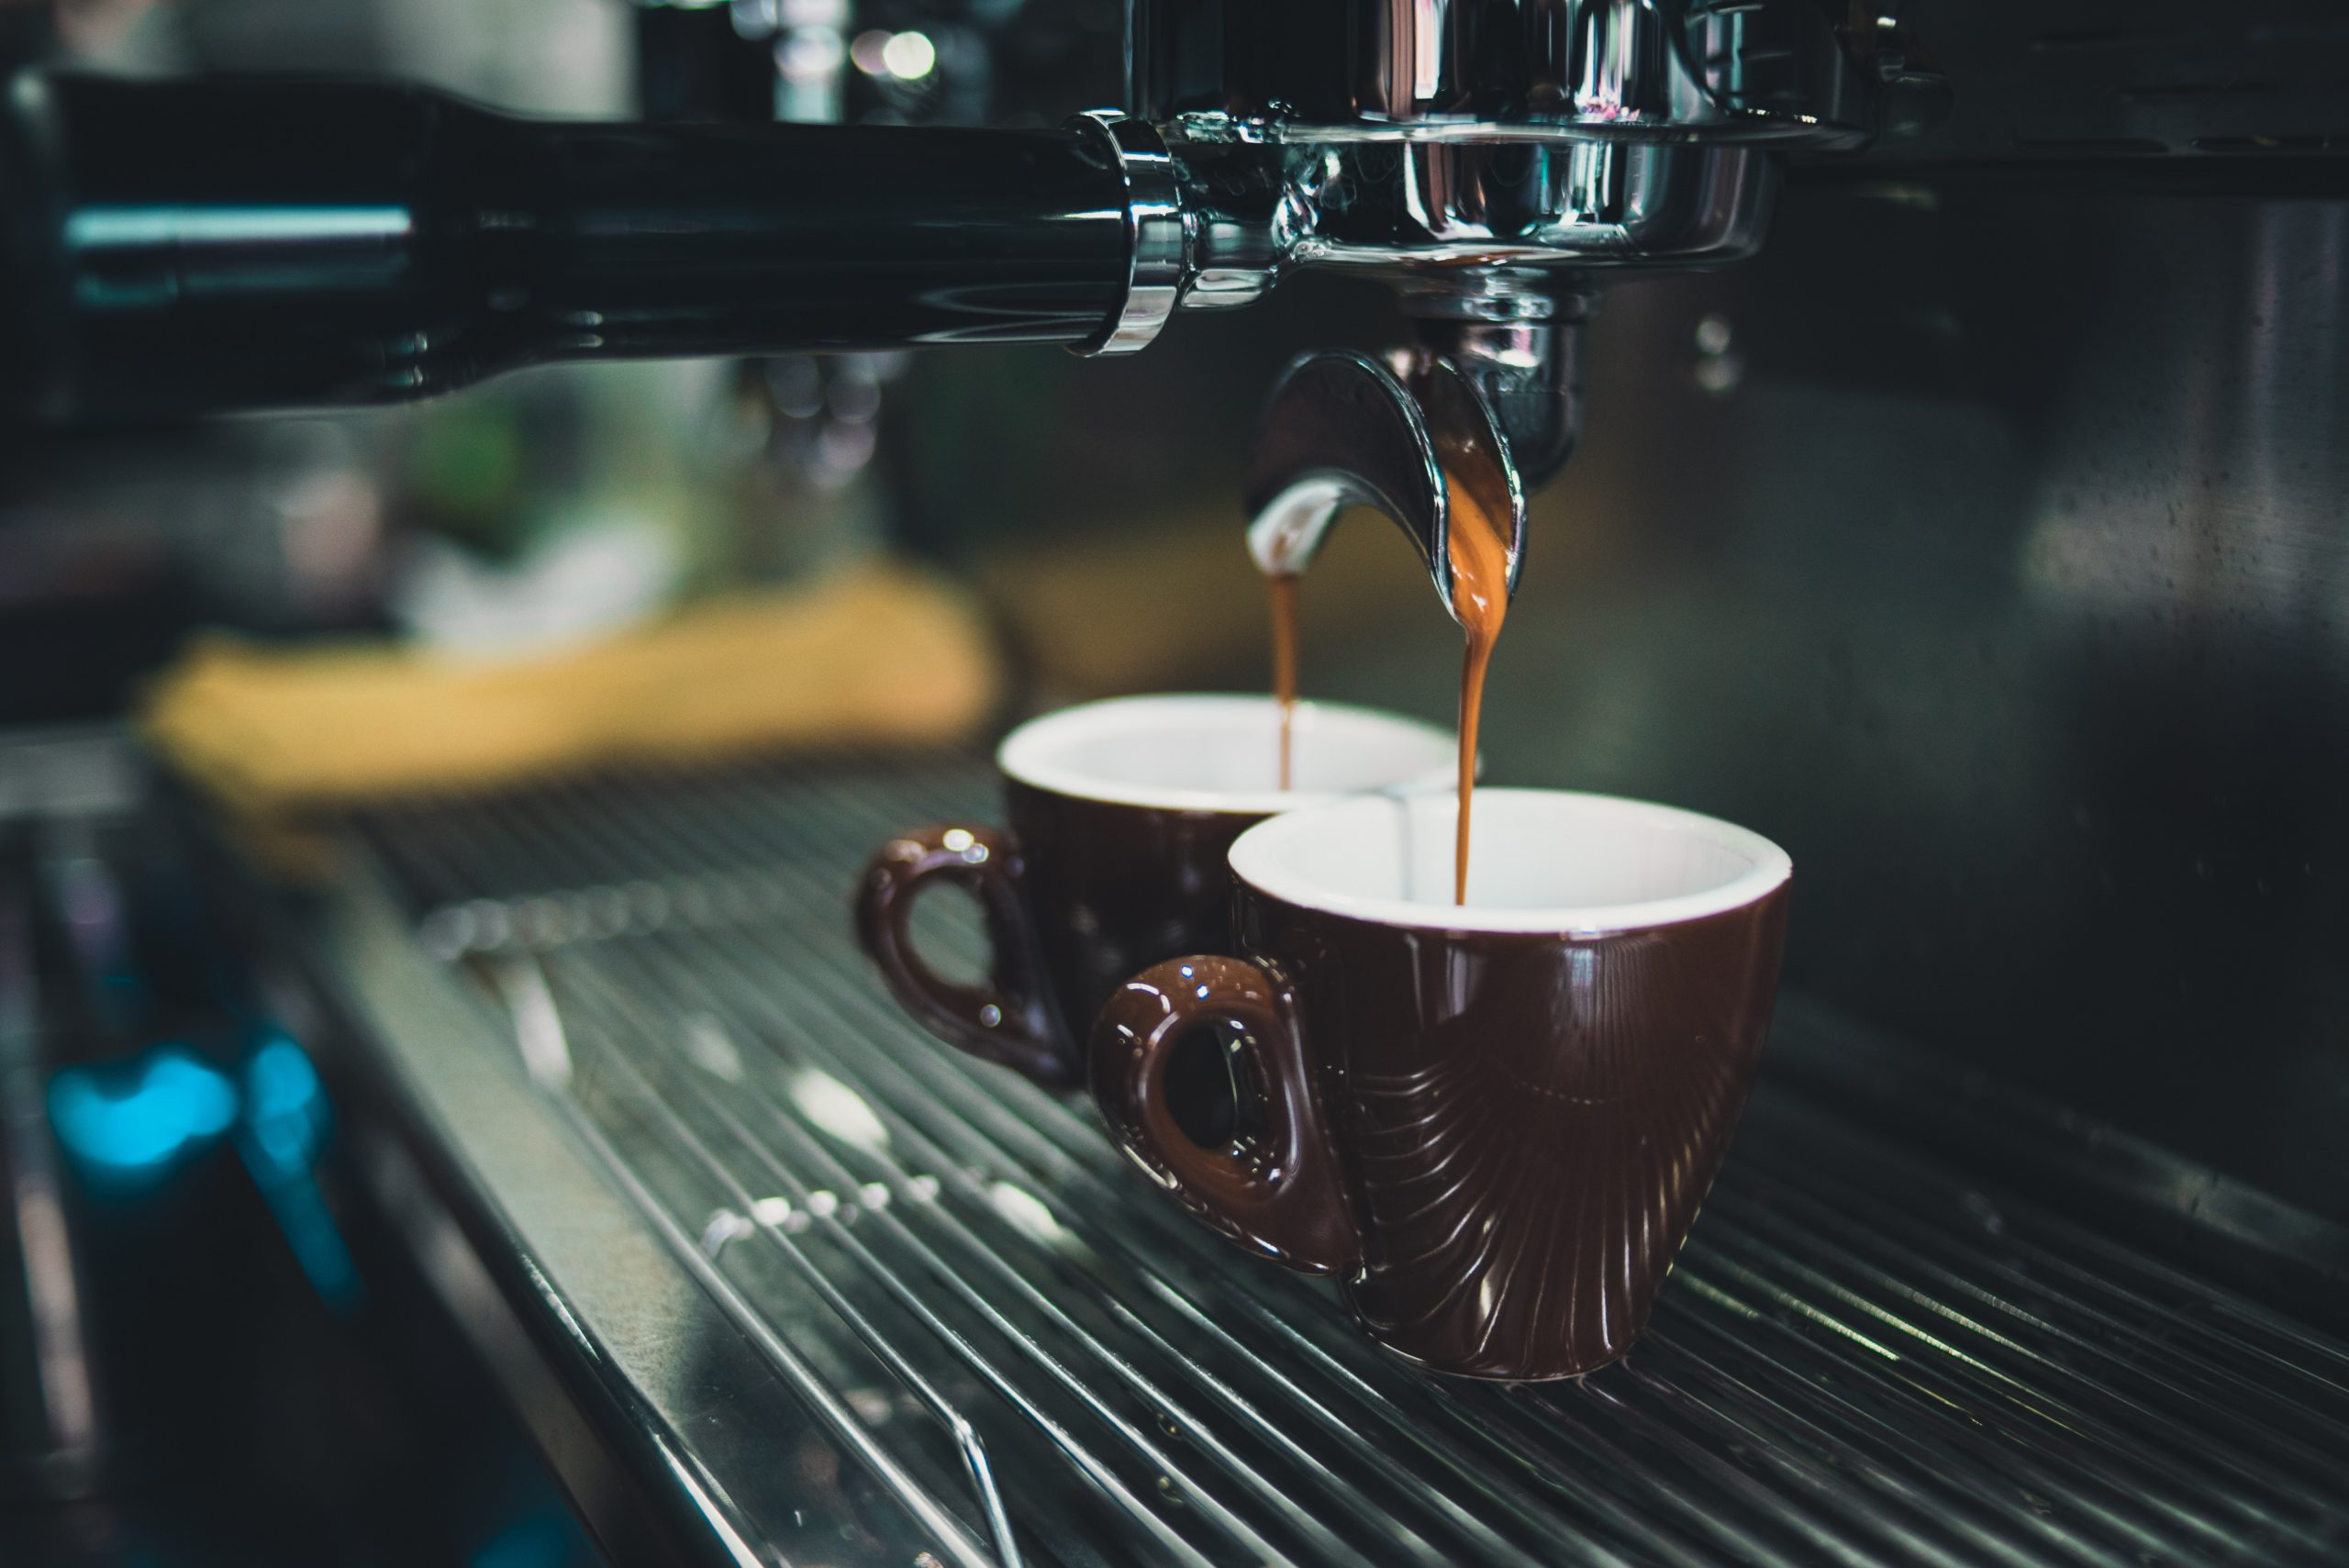 Coffee 101: How to Drink Coffee for New Increased Productivity in the Workplace